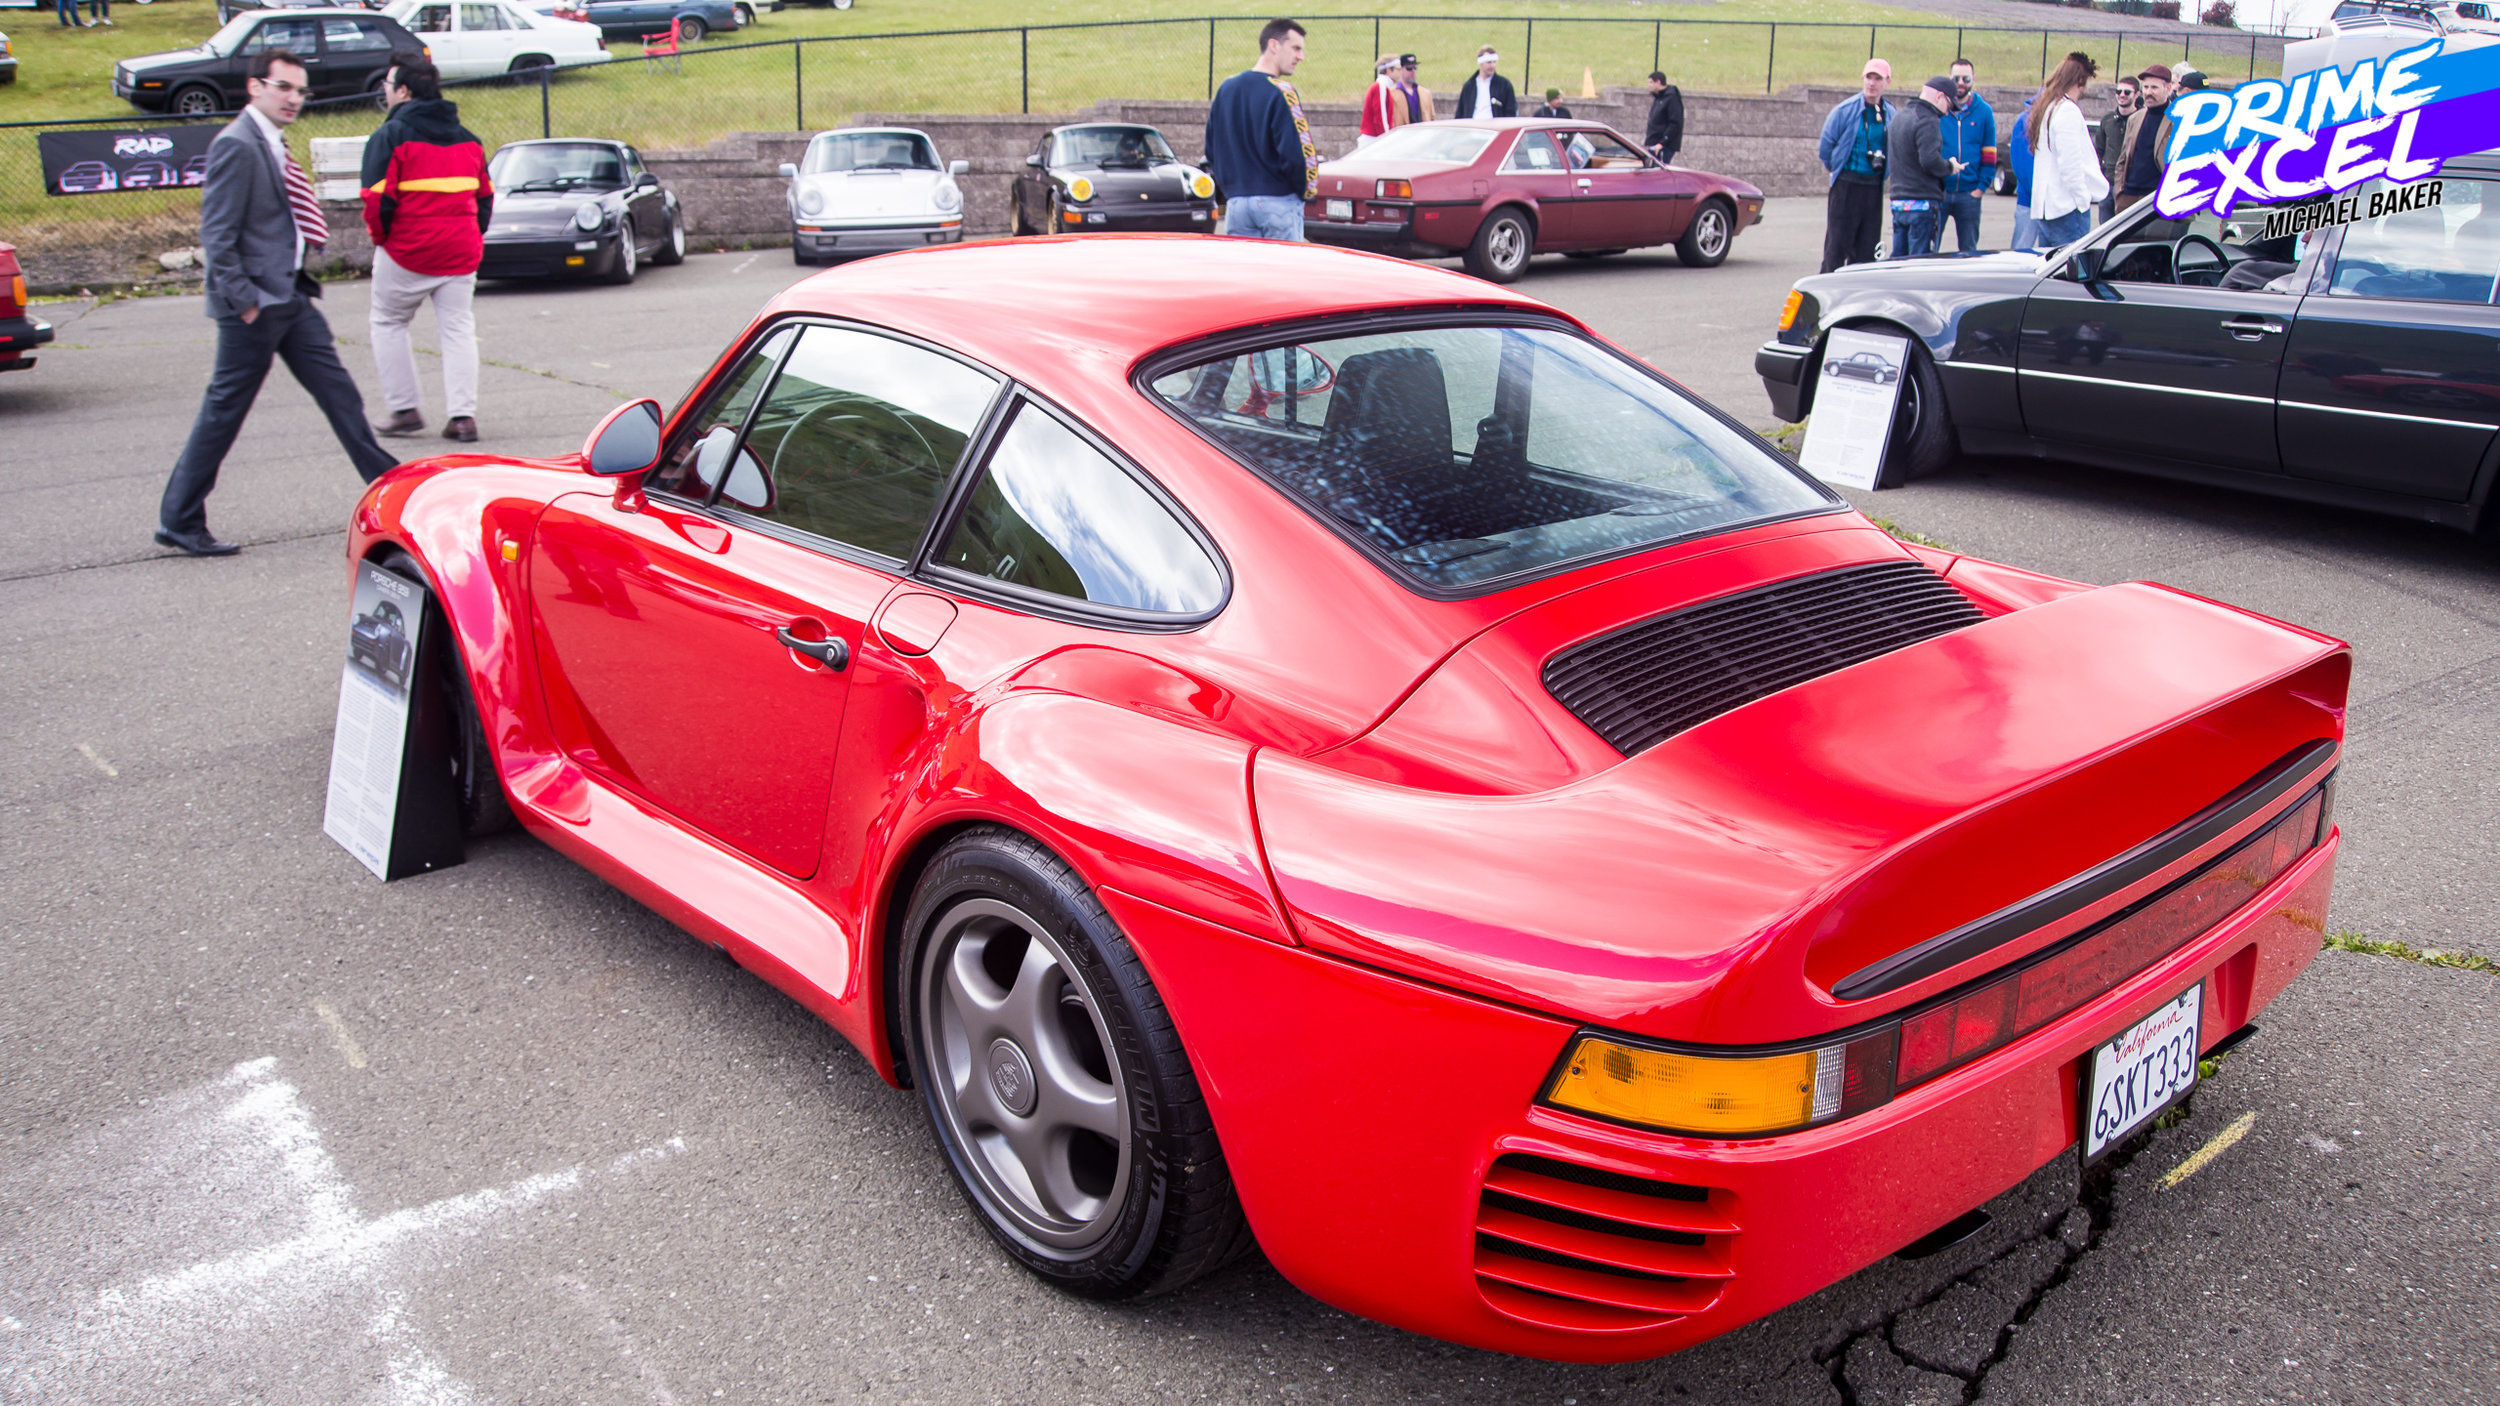 The aforementioned Porsche 959. Sadly, I did not get a ride in it.